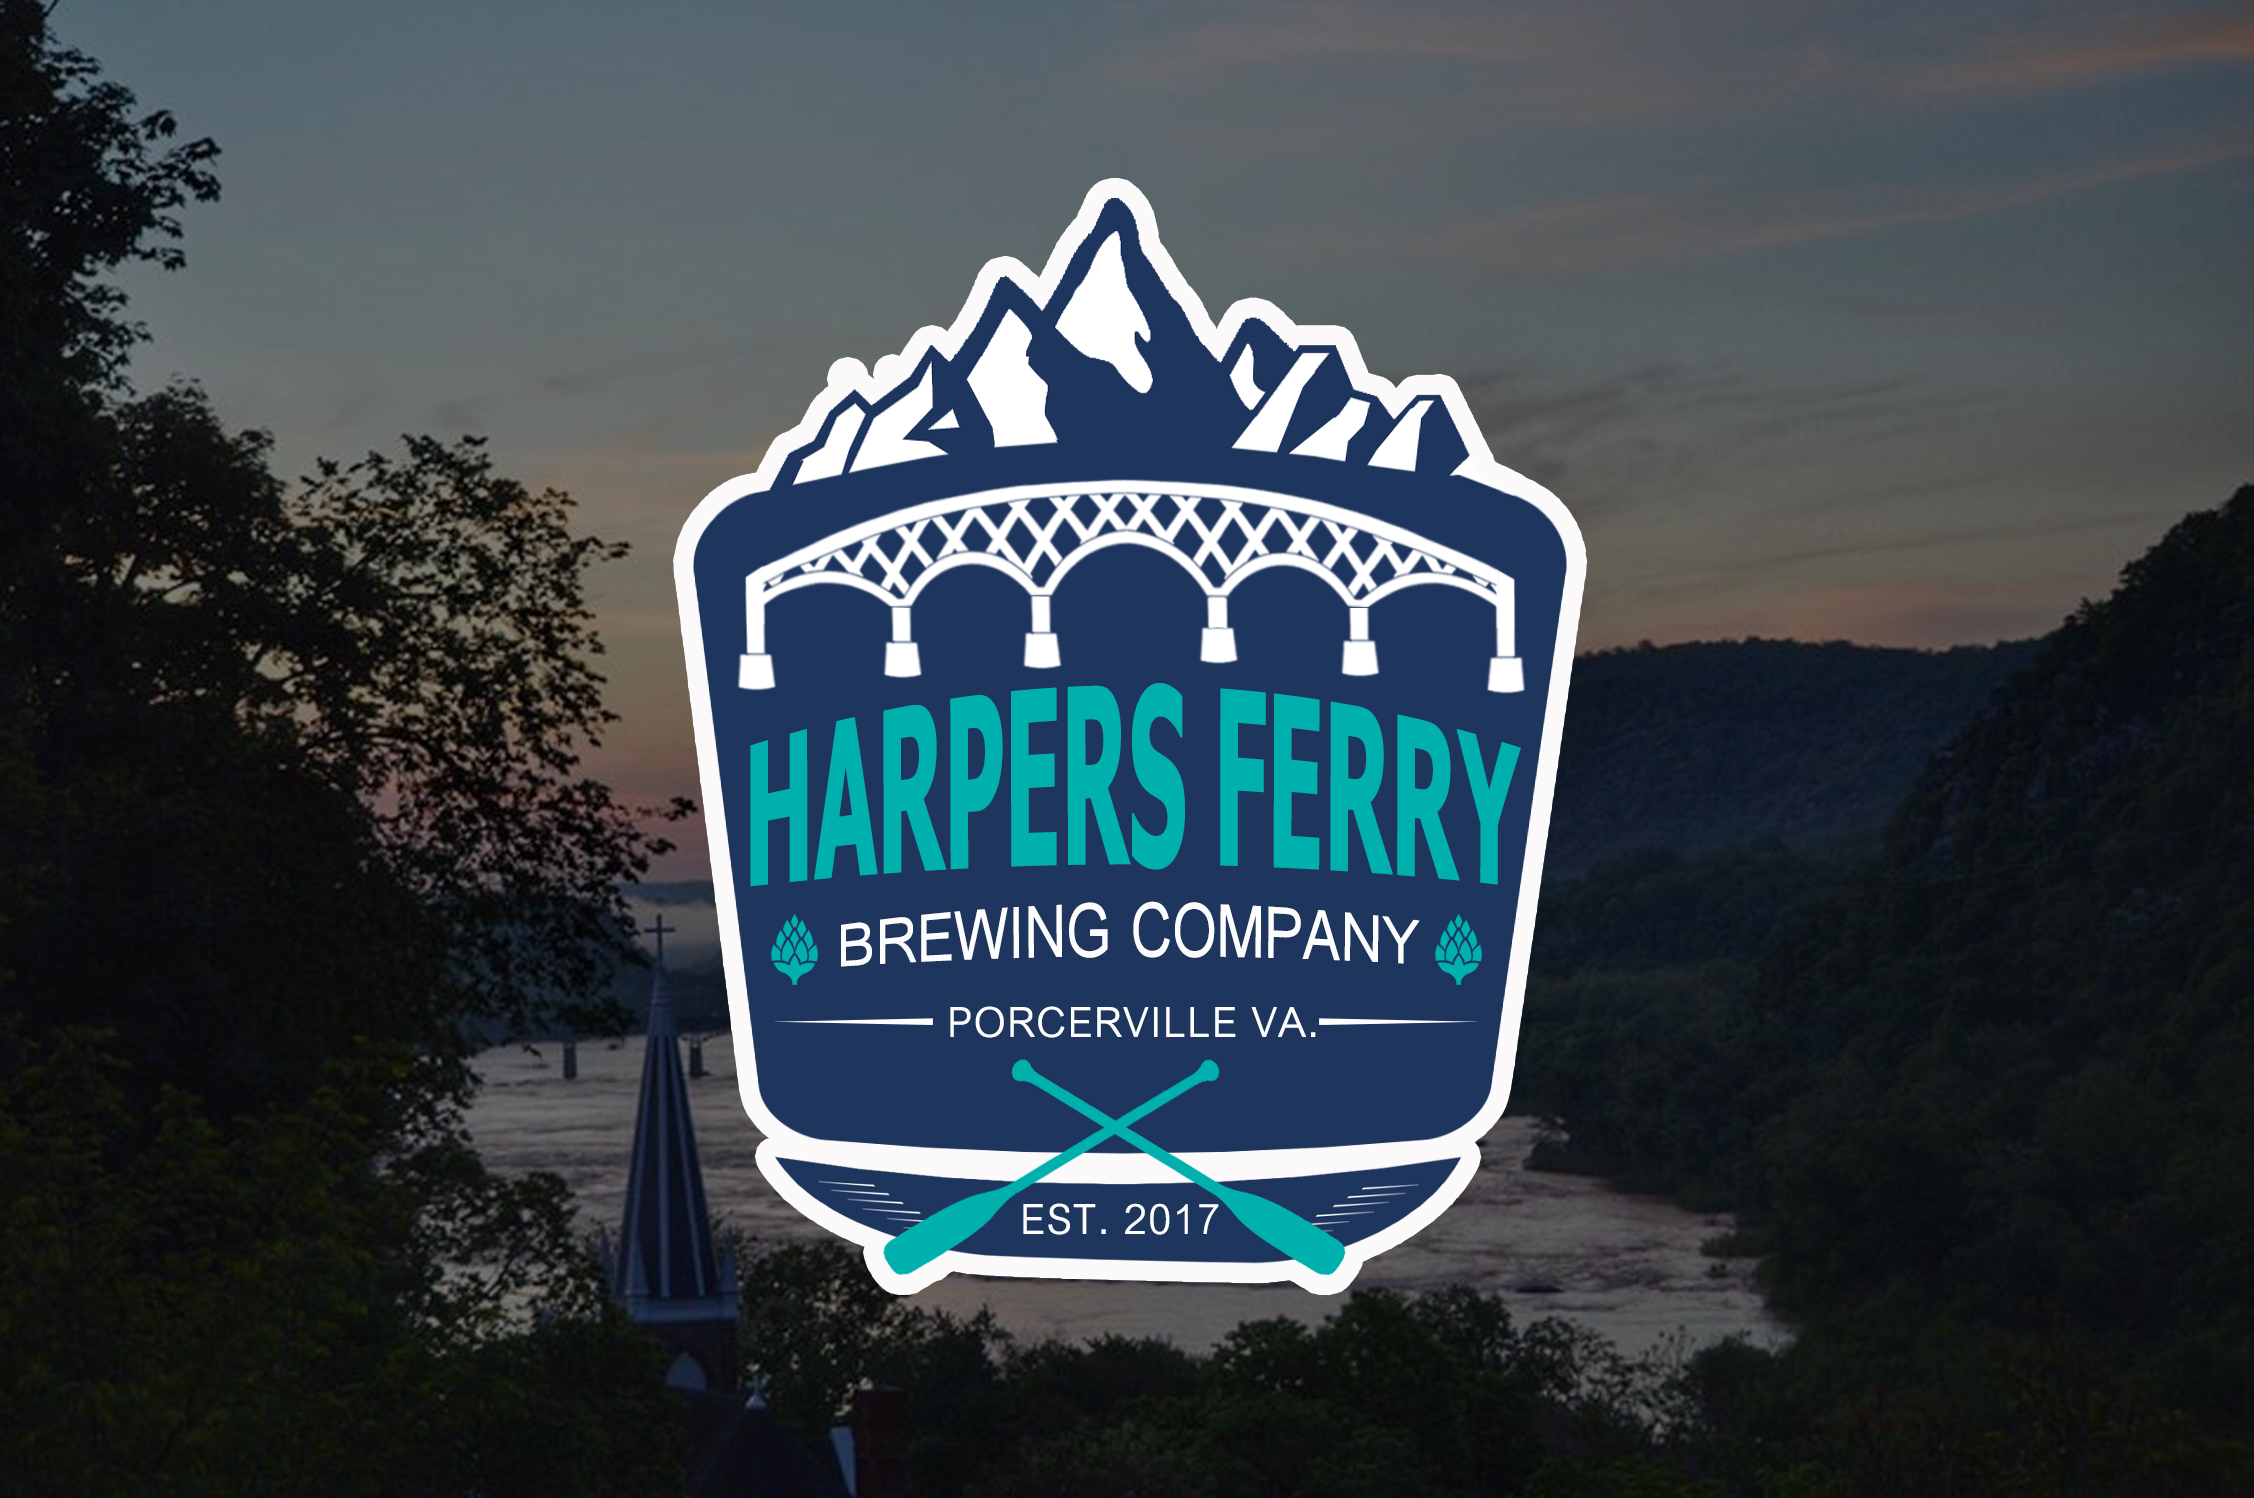 Logo Design by JSDESIGNGROUP - Entry No. 50 in the Logo Design Contest Unique Logo Design Wanted for Harpers ferry brewing company.